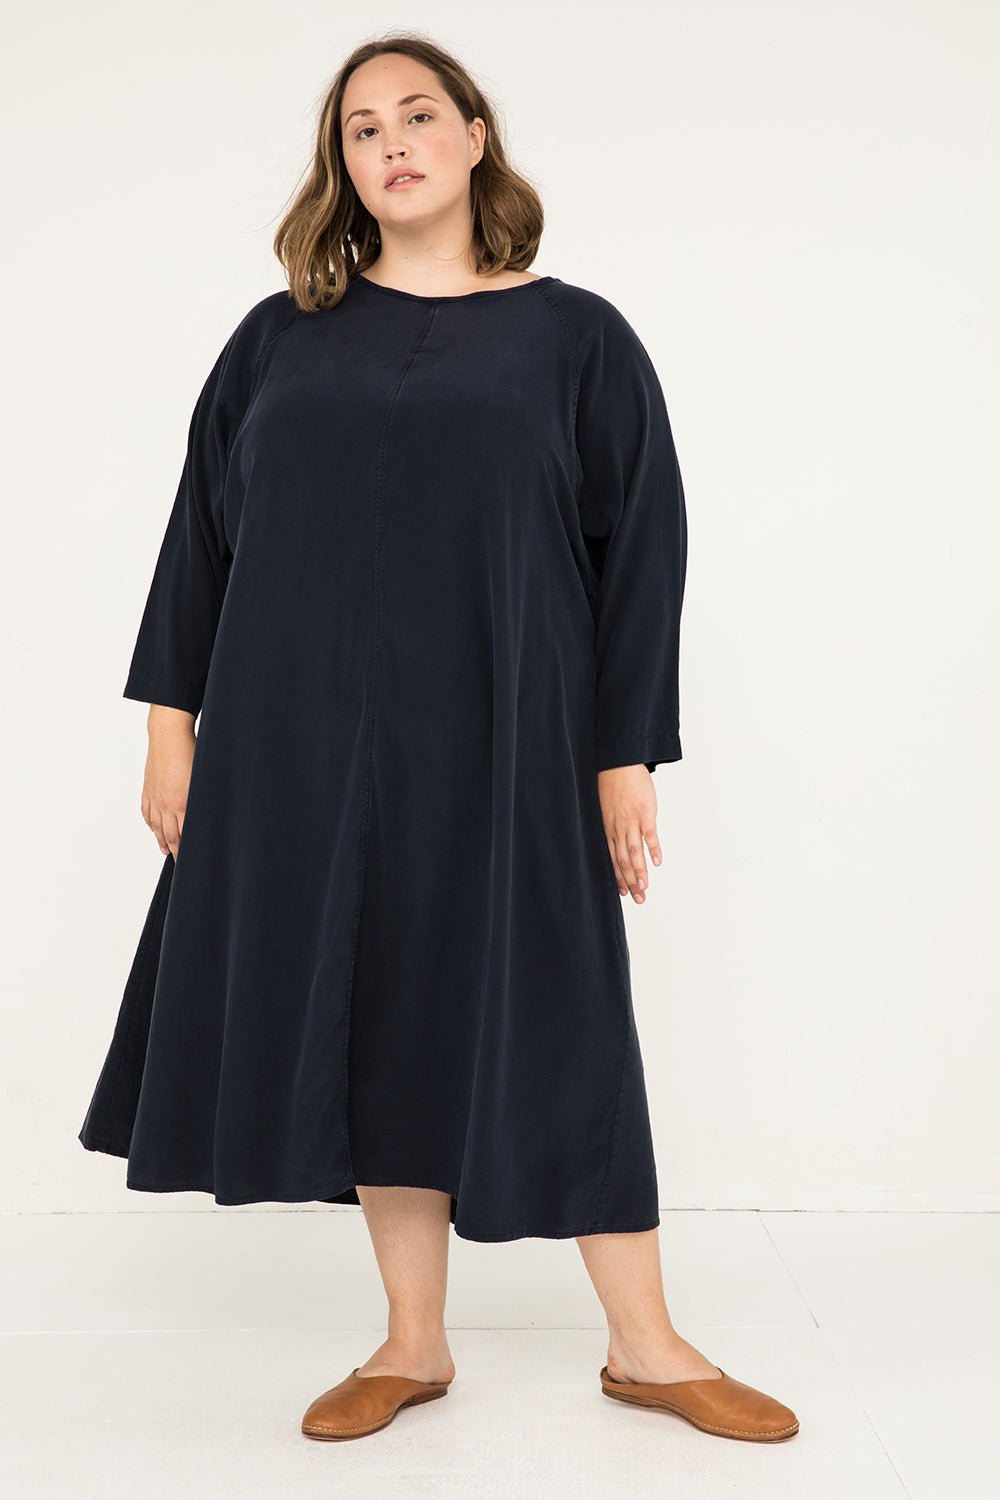 Artist Dress in Silk Crepe Navy - Sam-OSP2